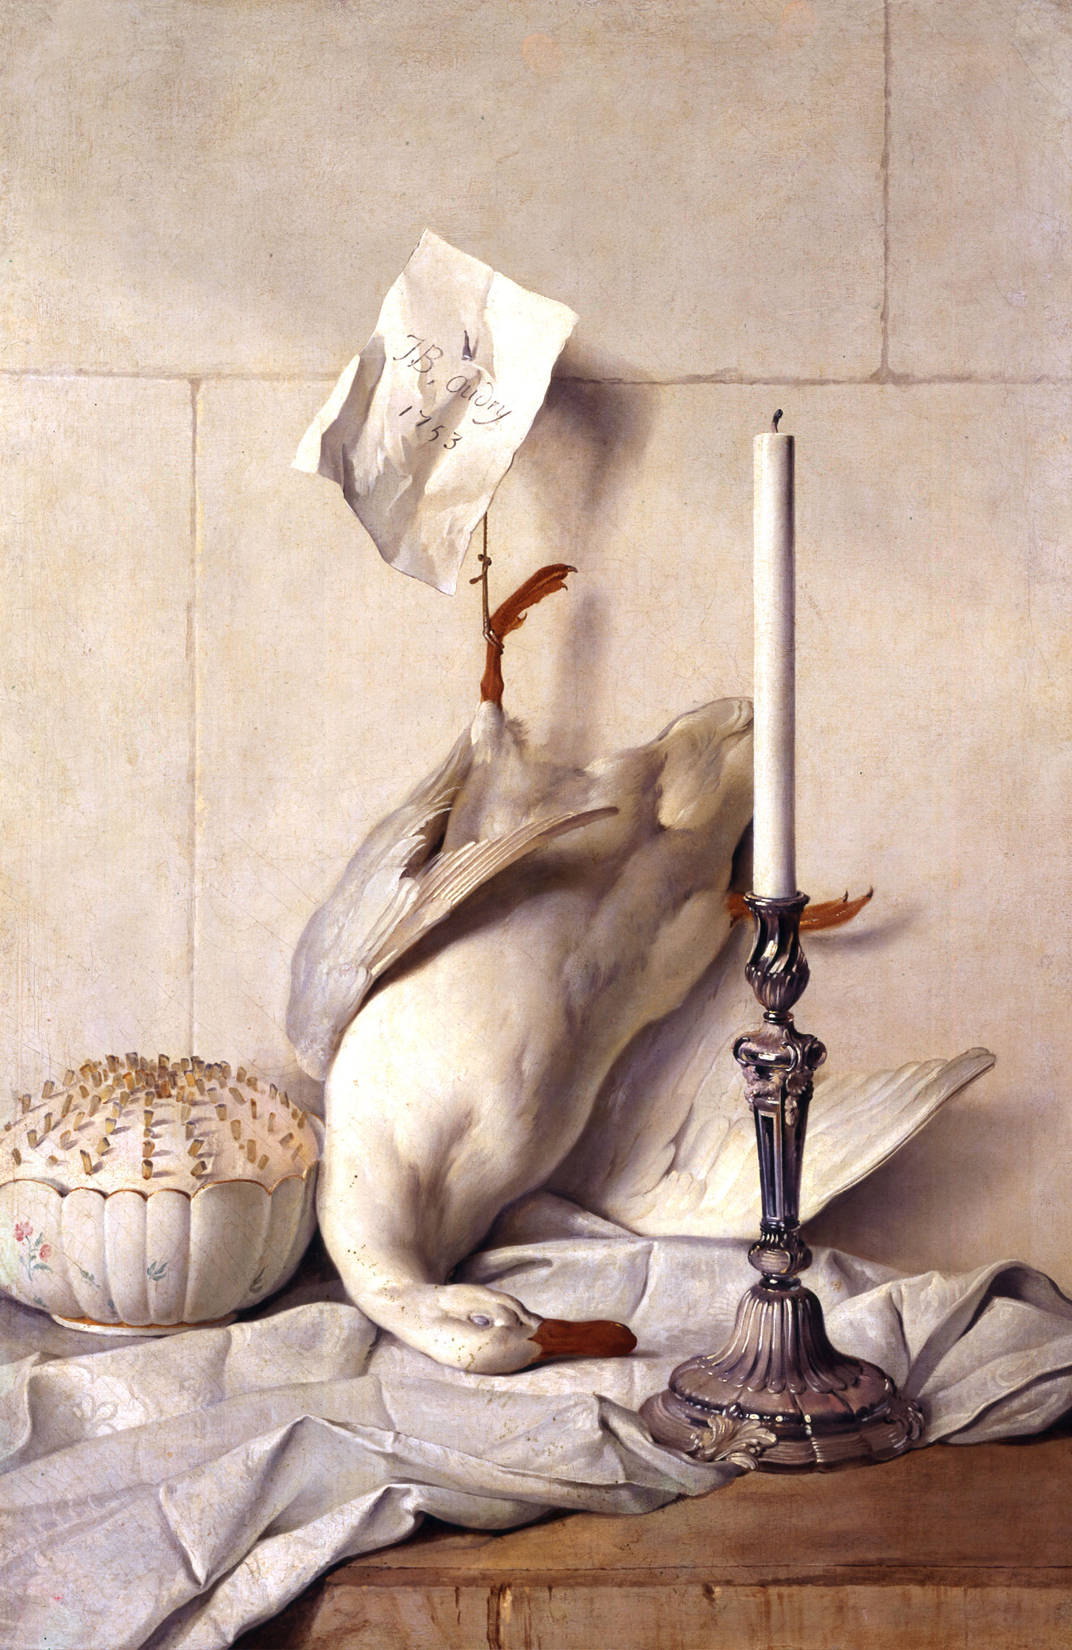 The White Duck, Jean-Baptiste Oudry, 1753.